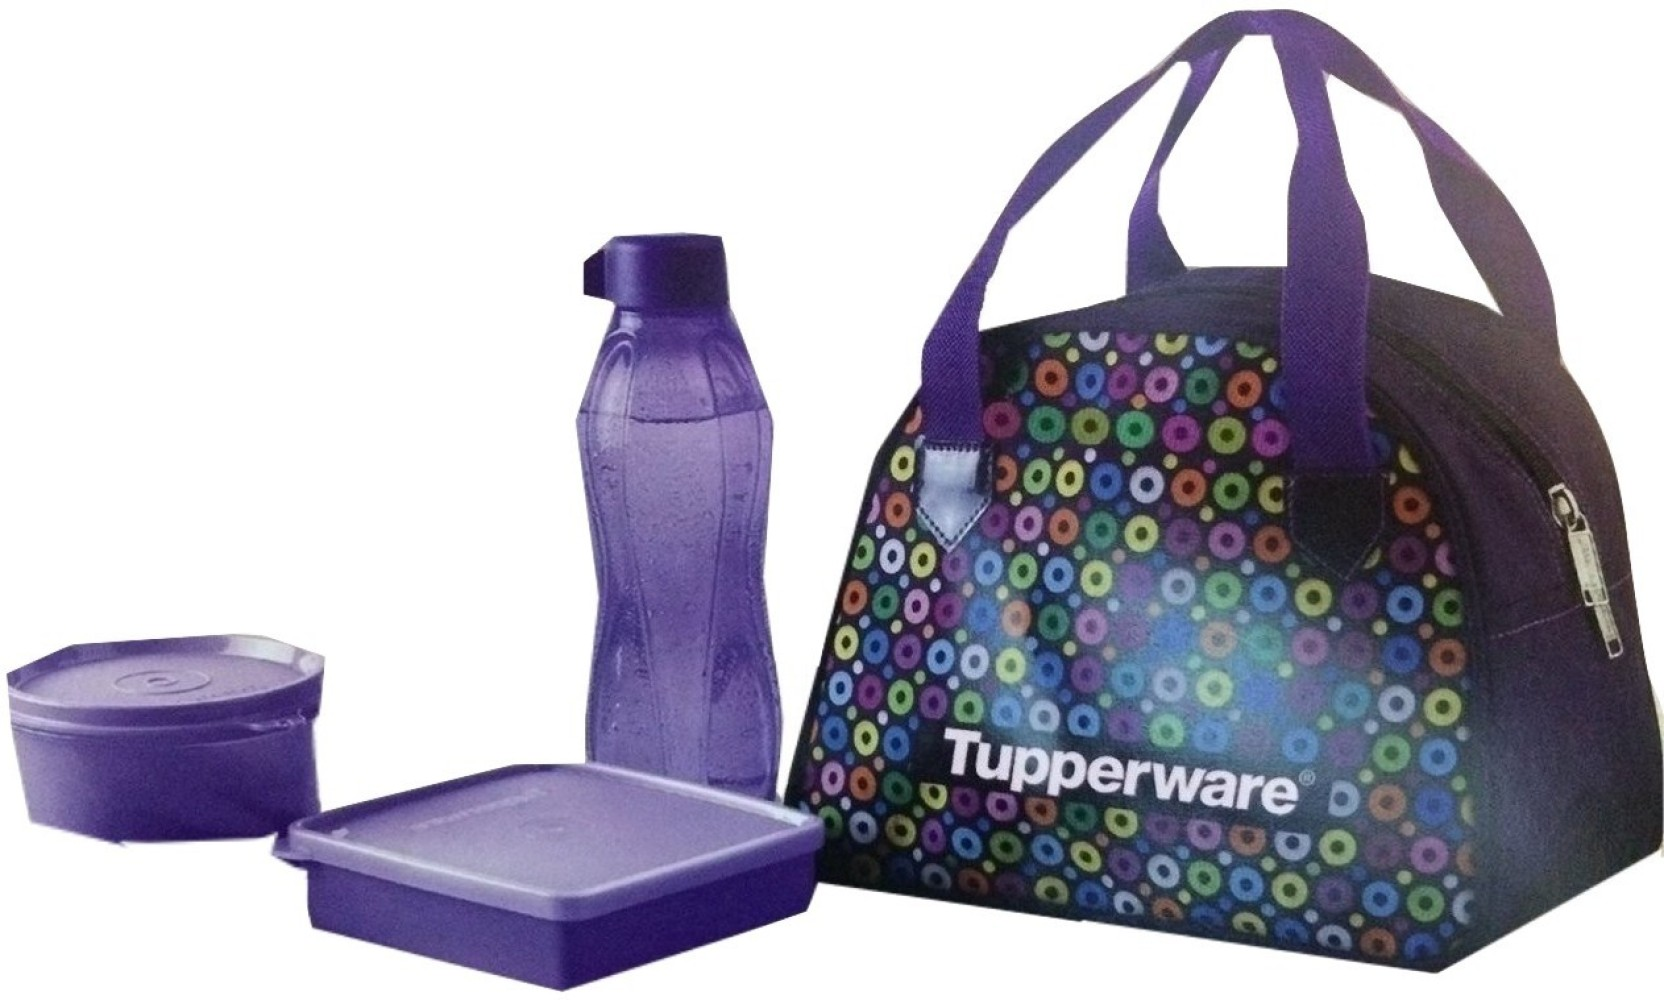 Tupperware Fun Loop 3 Containers Lunch Box Bring Your Own Set Share